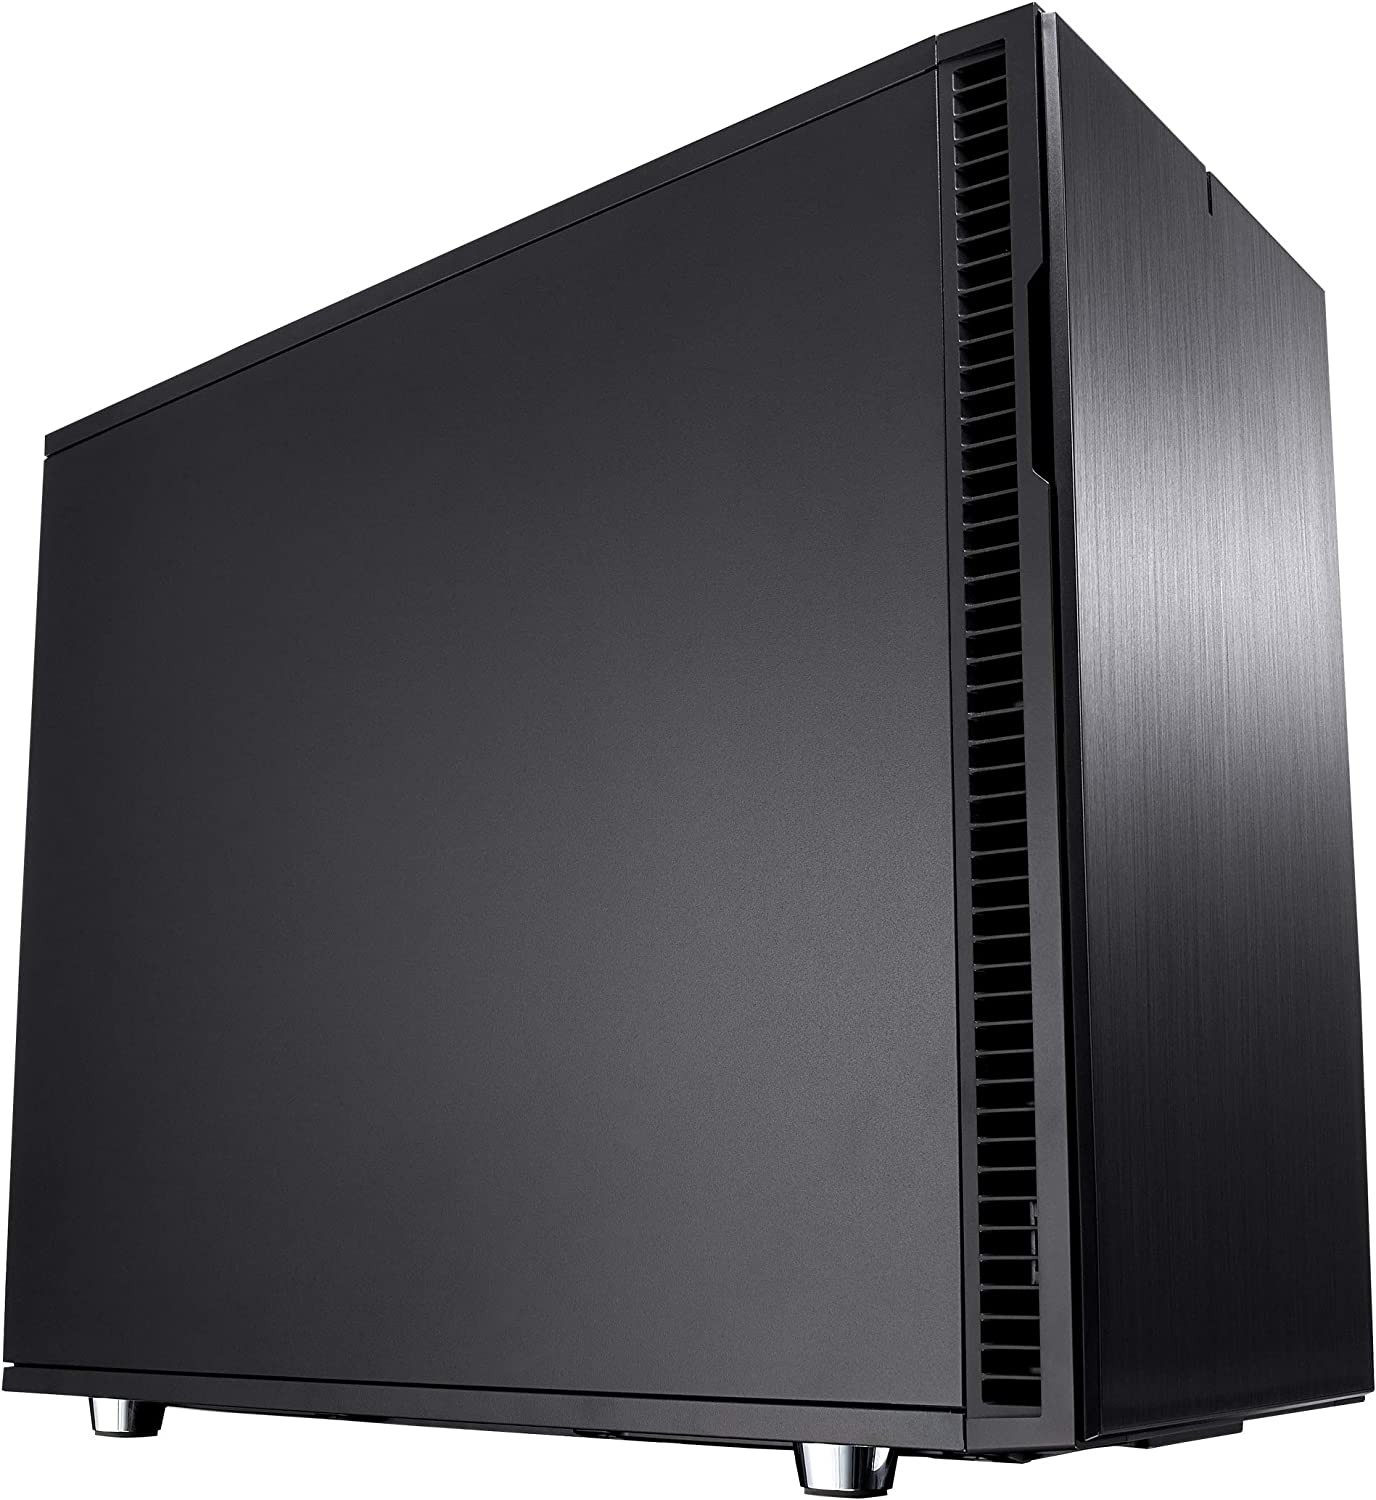 Fractal Design Define R6 USB-C - Mid Tower Computer Case - ATX - Optimized for High Airflow and Silent Computing with Moduvent Technology - PSU Shroud - Modular - Water-Cooling Ready - Blackout